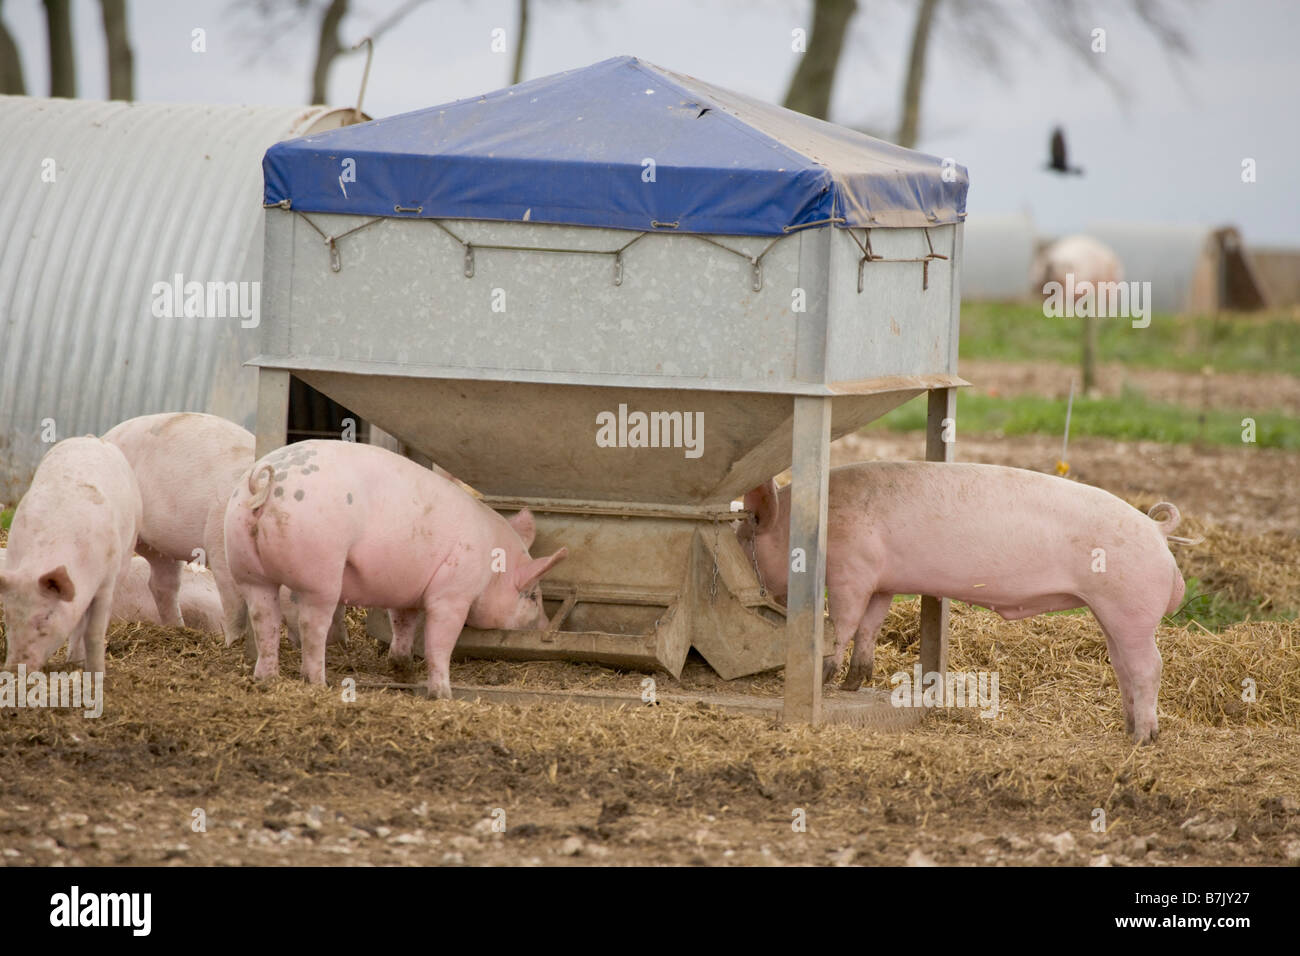 Pig farm with ark shelters - Stock Image